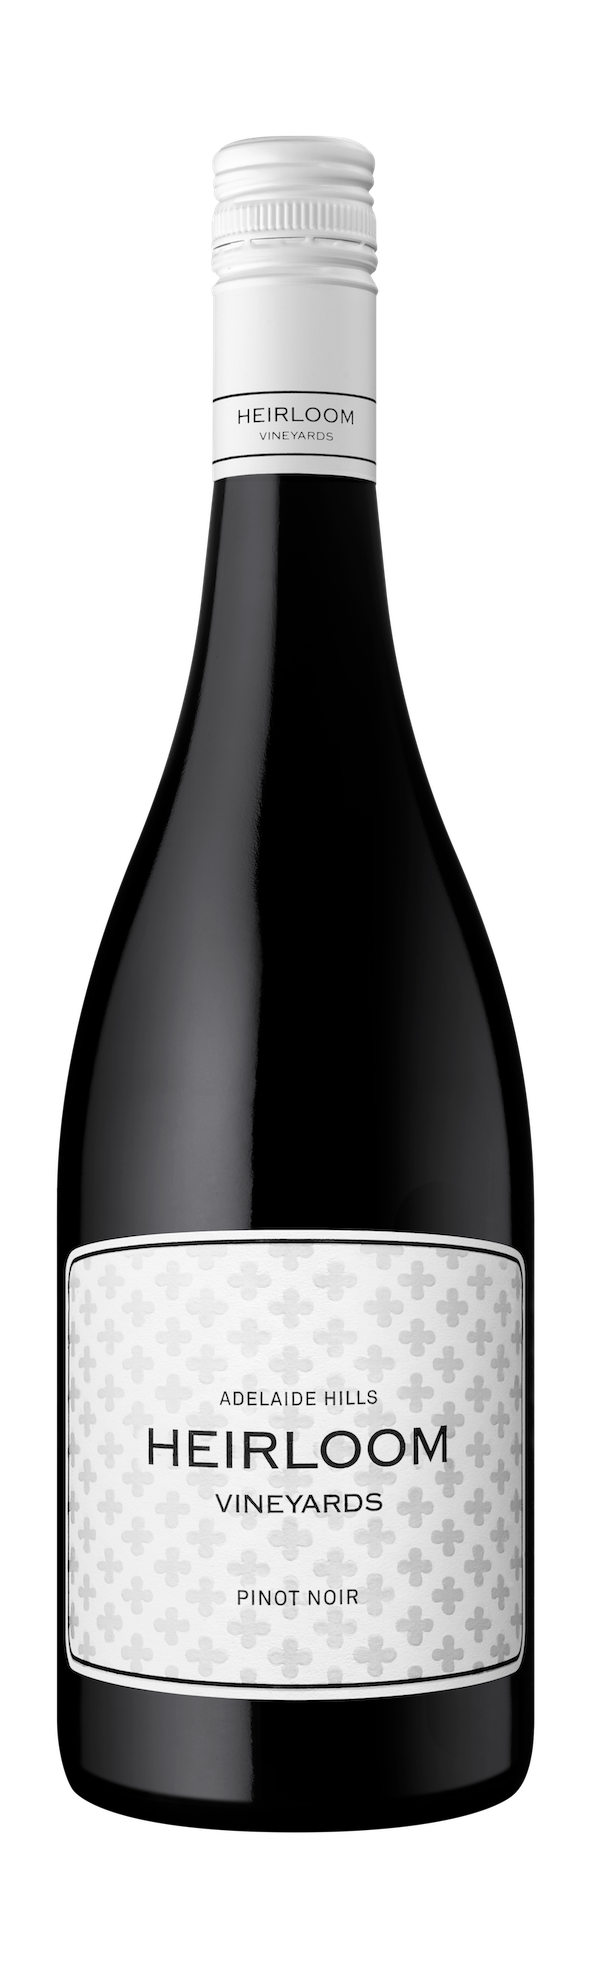 2019 Heirloom Vineyards Adelaide Hills Pinot Noir